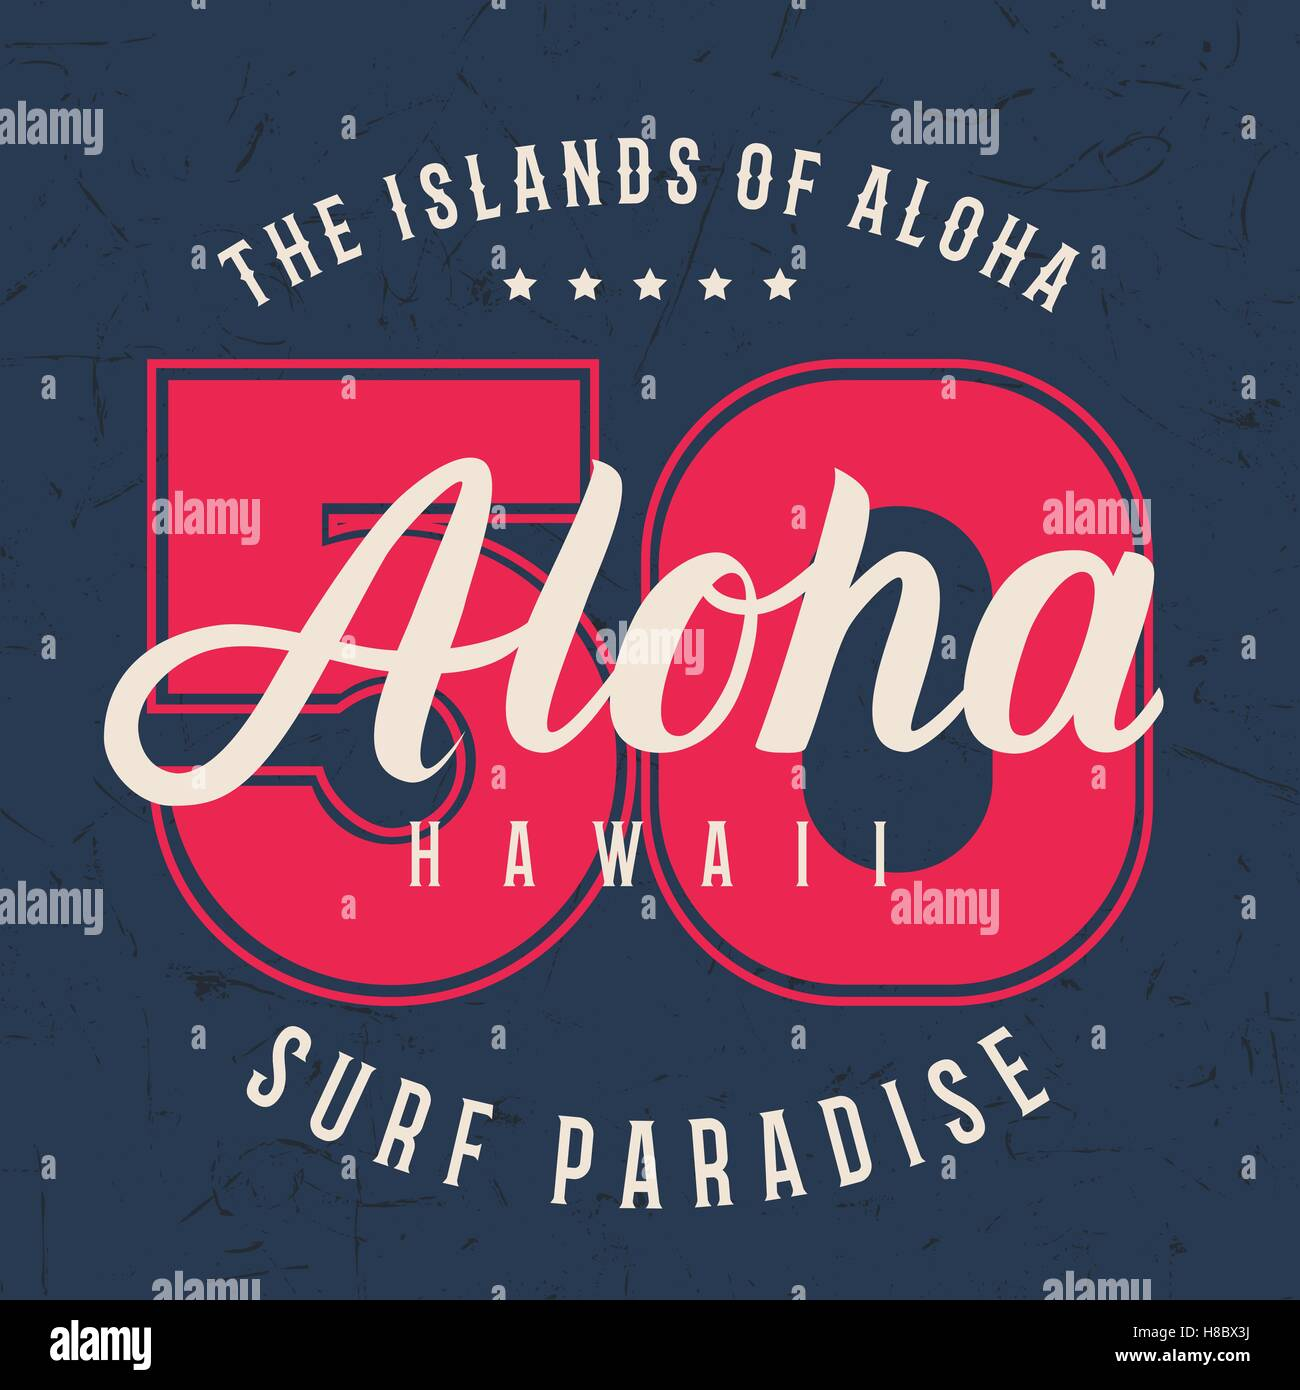 Aloha hawaii lettering typography, t-shirt graphics design